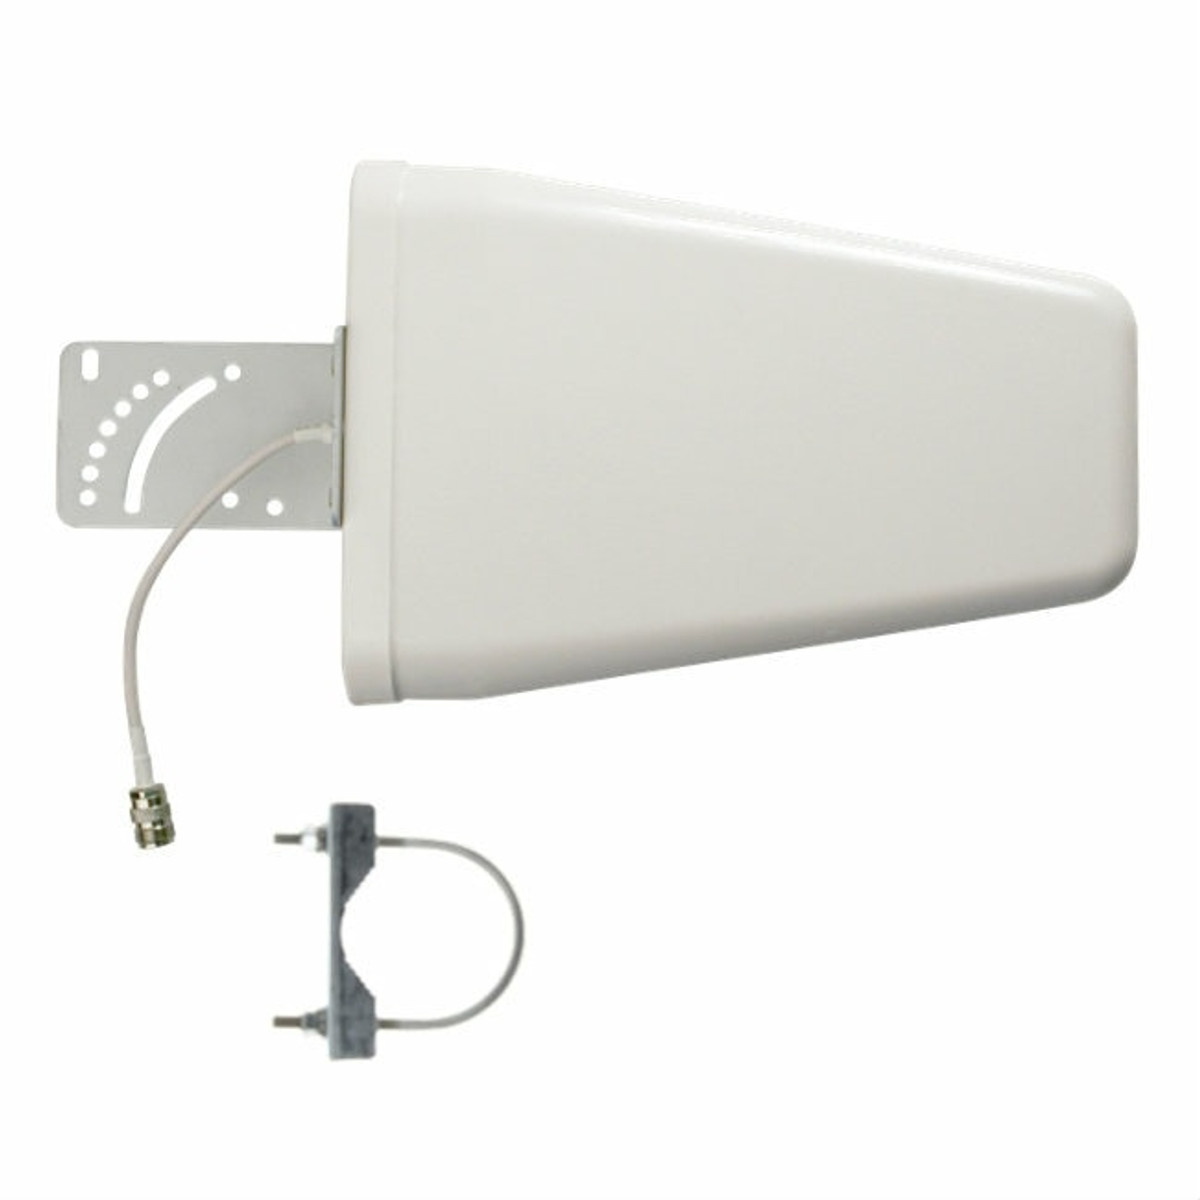 weBoost (Wilson) 314411 Yagi Directional Antenna, Wide Band, 50ohm, N-Connector